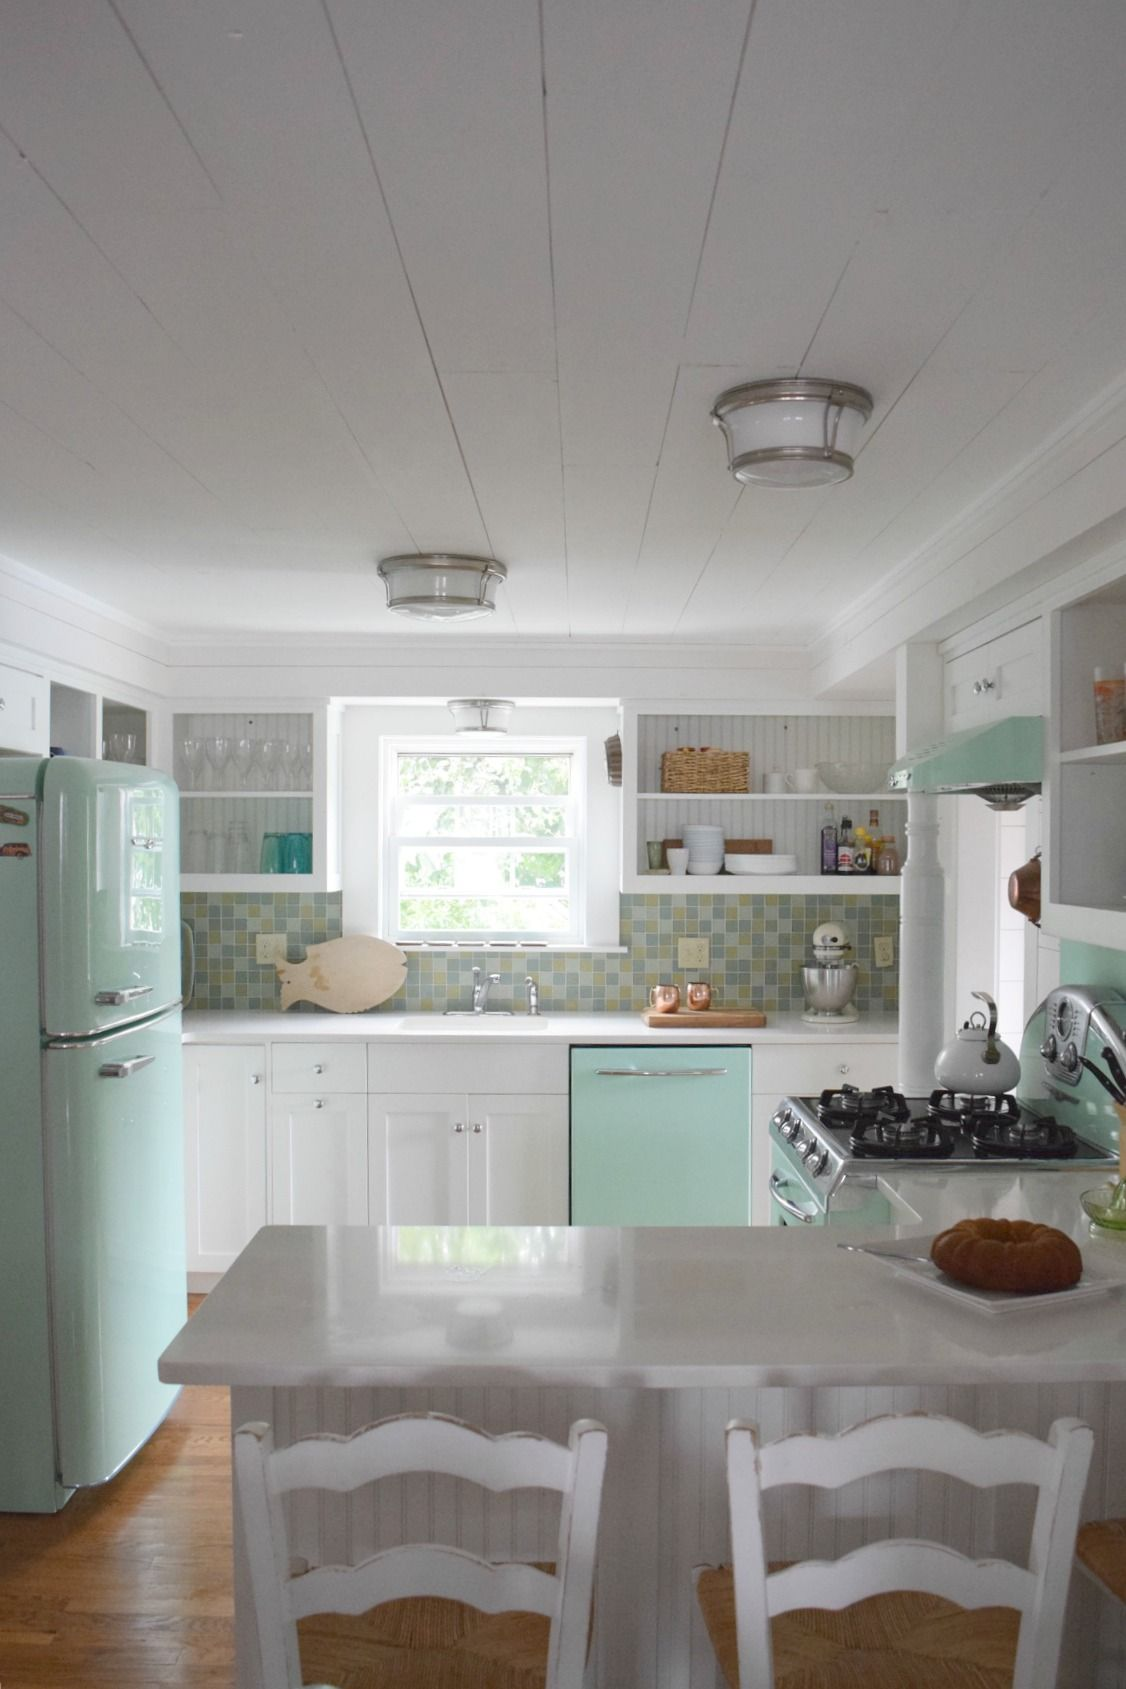 Beach House Tour and Retro Kitchen | The Maine House | Beach ... on cottage kitchen decorating ideas, small cottage decorating ideas, cottage kitchen design ideas, tiny cottage kitchen corner, small farmhouse kitchen ideas, country blue kitchen ideas, barn kitchen ideas, do it yourself kitchen ideas, white cottage kitchen ideas, 2015 kitchen ideas, cottage style kitchen ideas, lowe's kitchen ideas, english cottage kitchen ideas, lake house kitchen ideas,